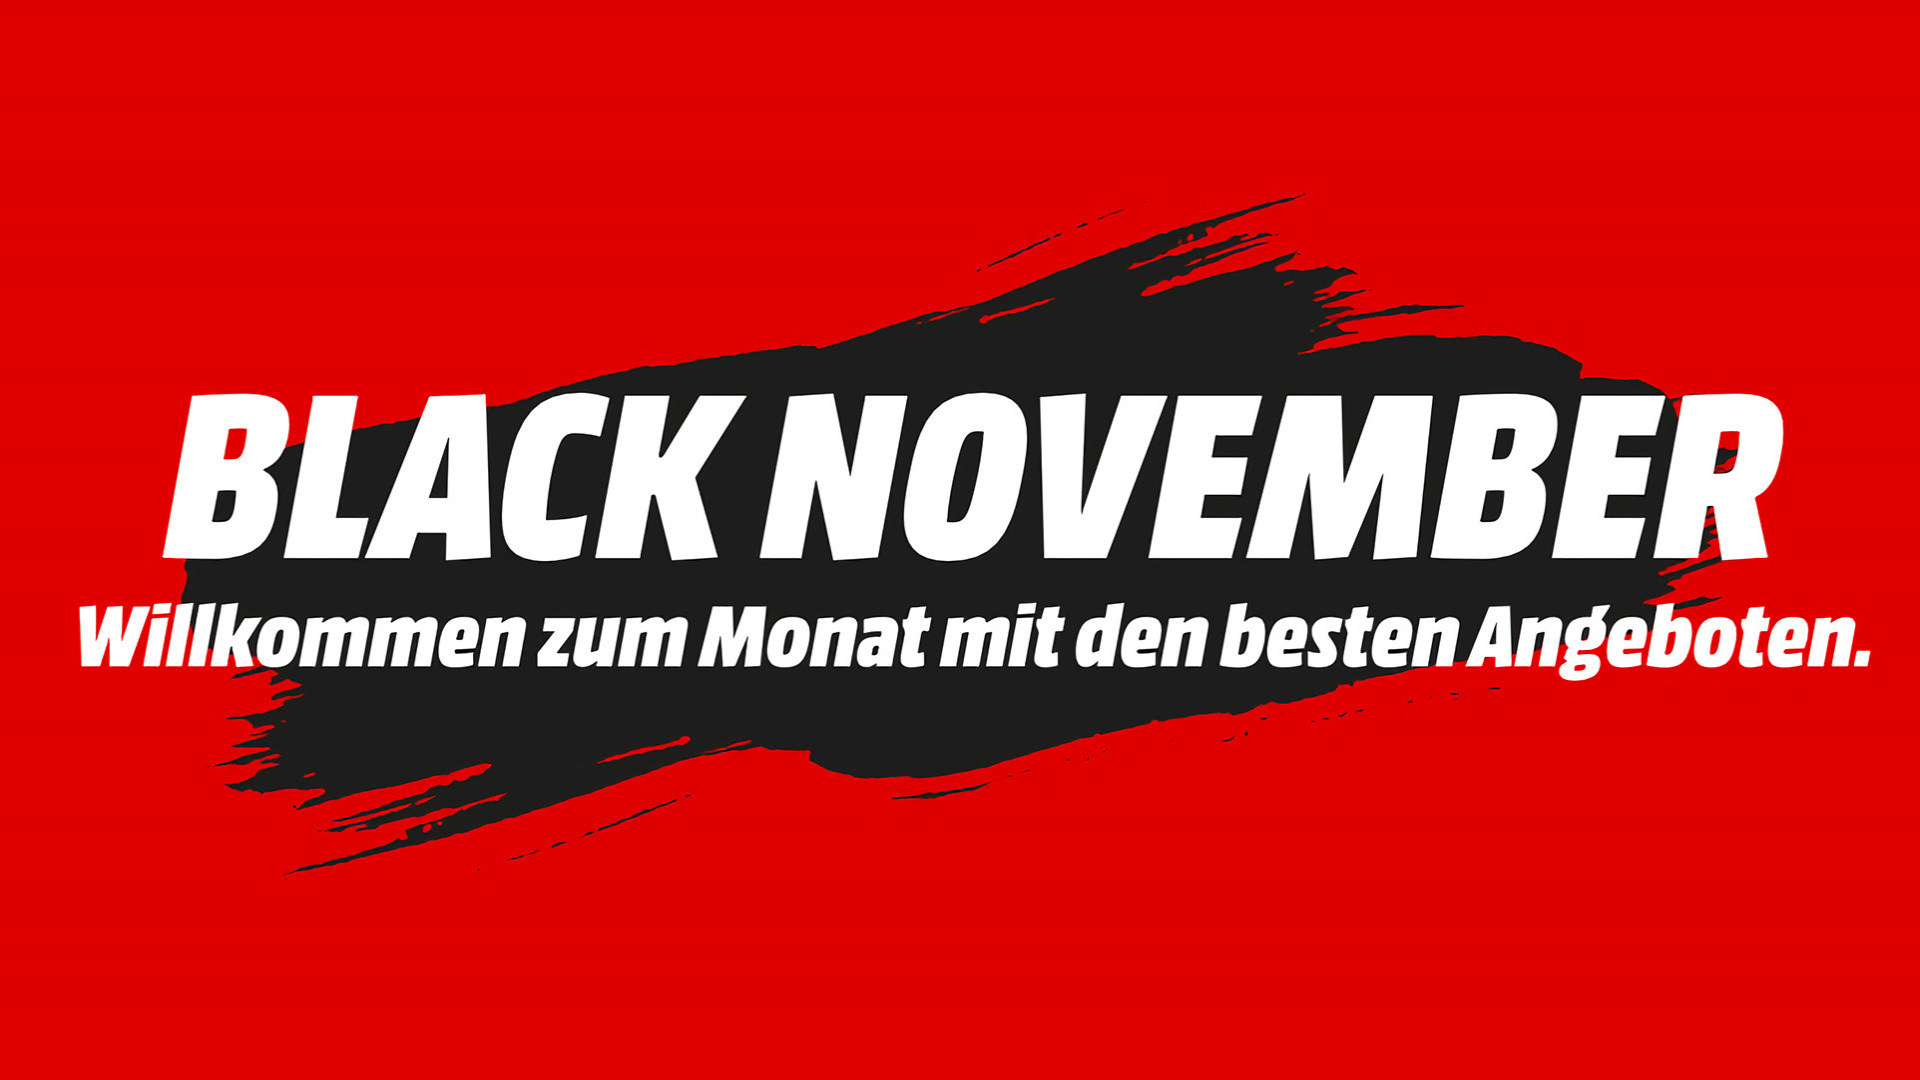 Schnäppchen, Sonderangebote, Rabattaktion, sale, Deals, Media Markt, prospekt, Angebote, Black Friday, Black November